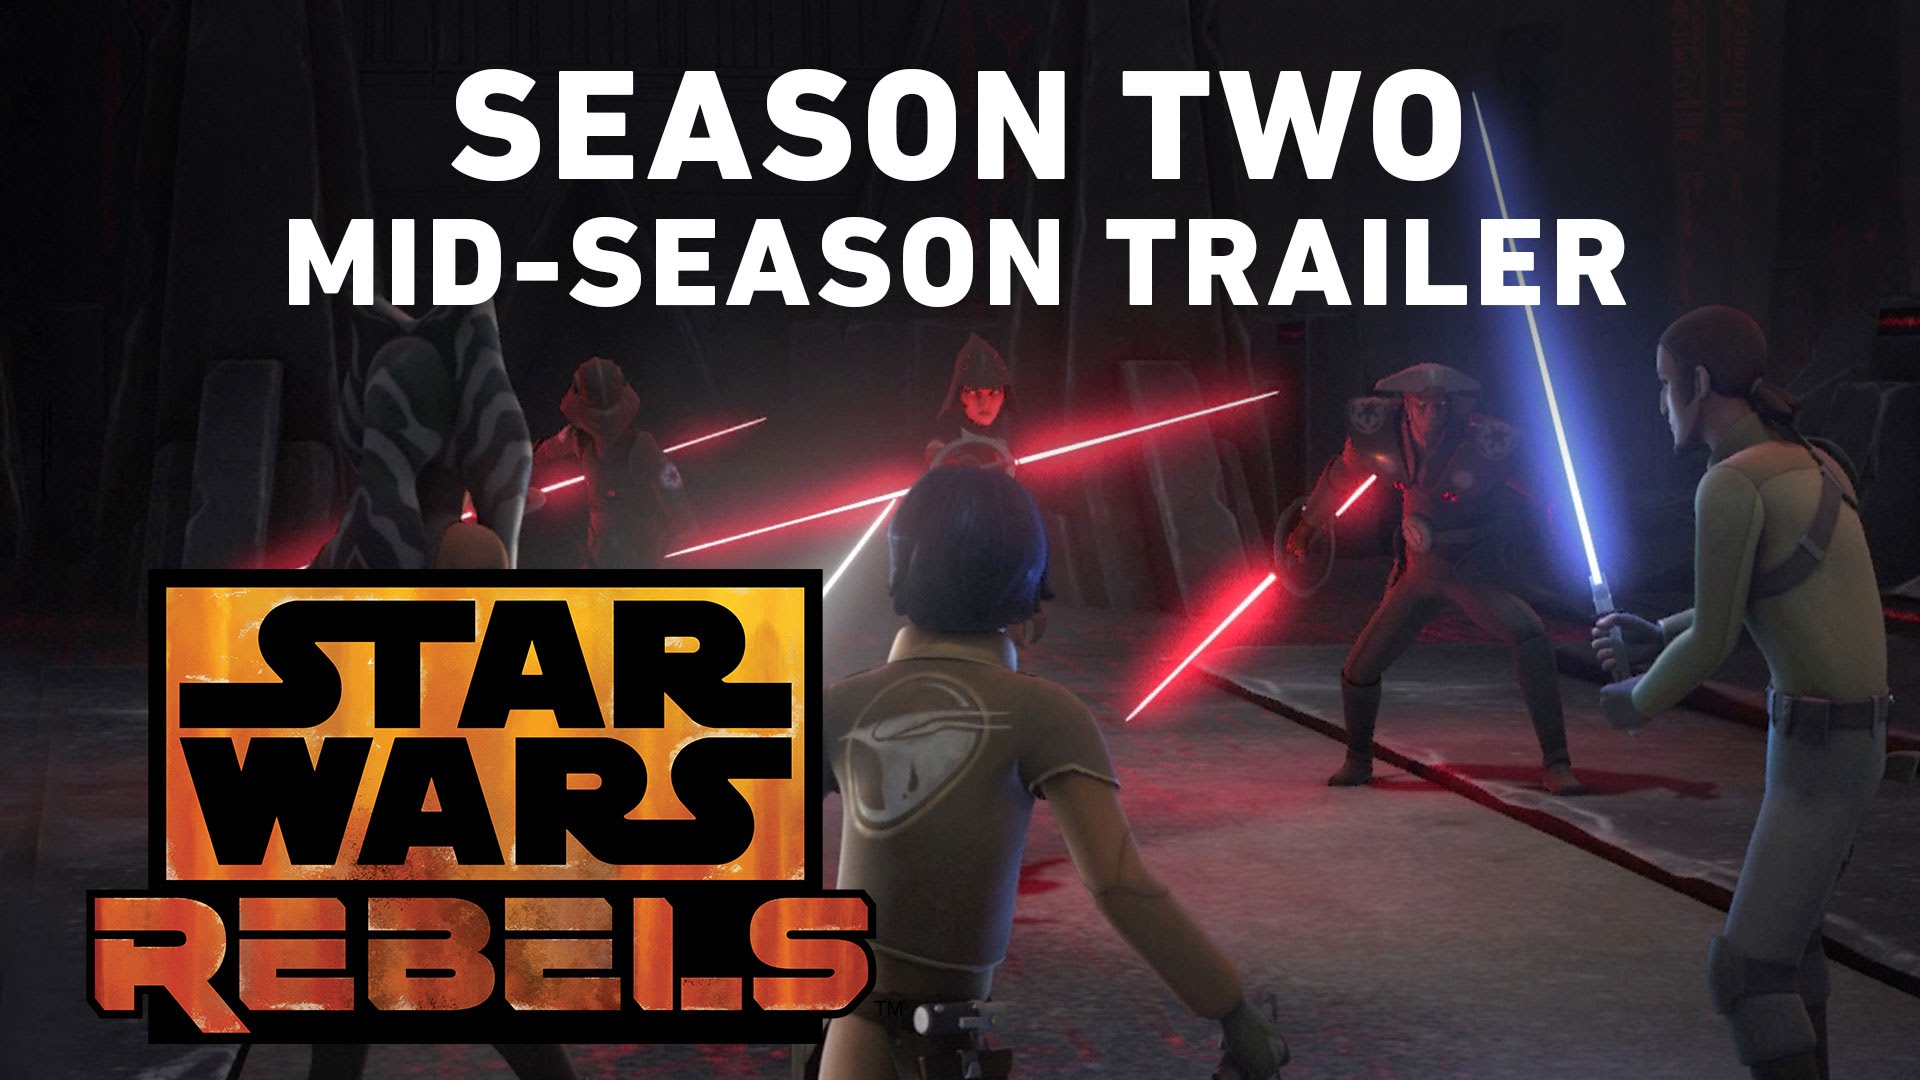 Star Wars Rebels Season Two – Mid-Season Trailer (Official)